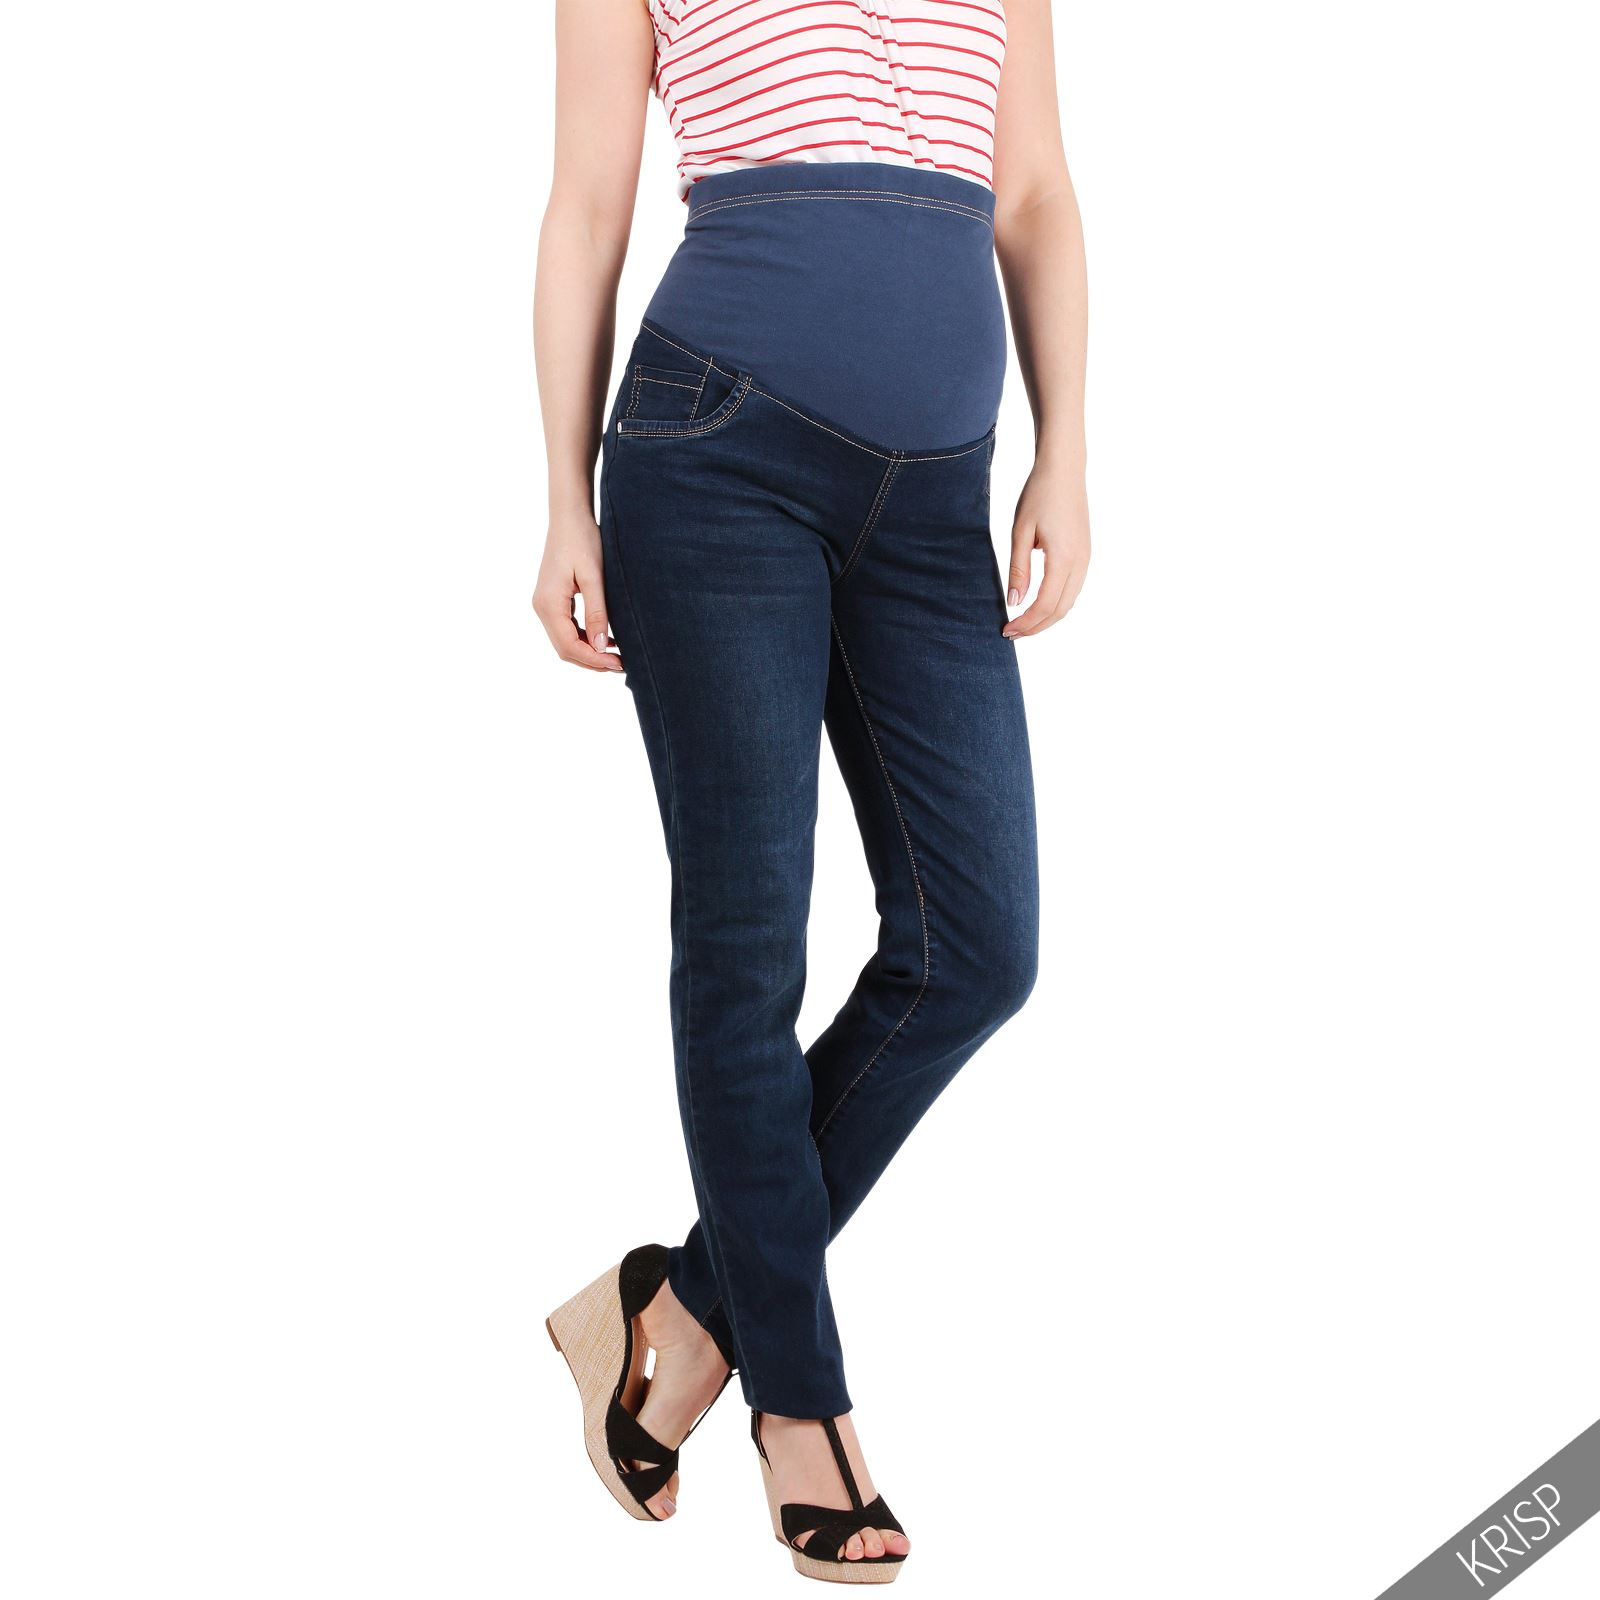 Buy the latest Women's Jeans online at THE ICONIC. Free and fast delivery to Australia and New Zealand.